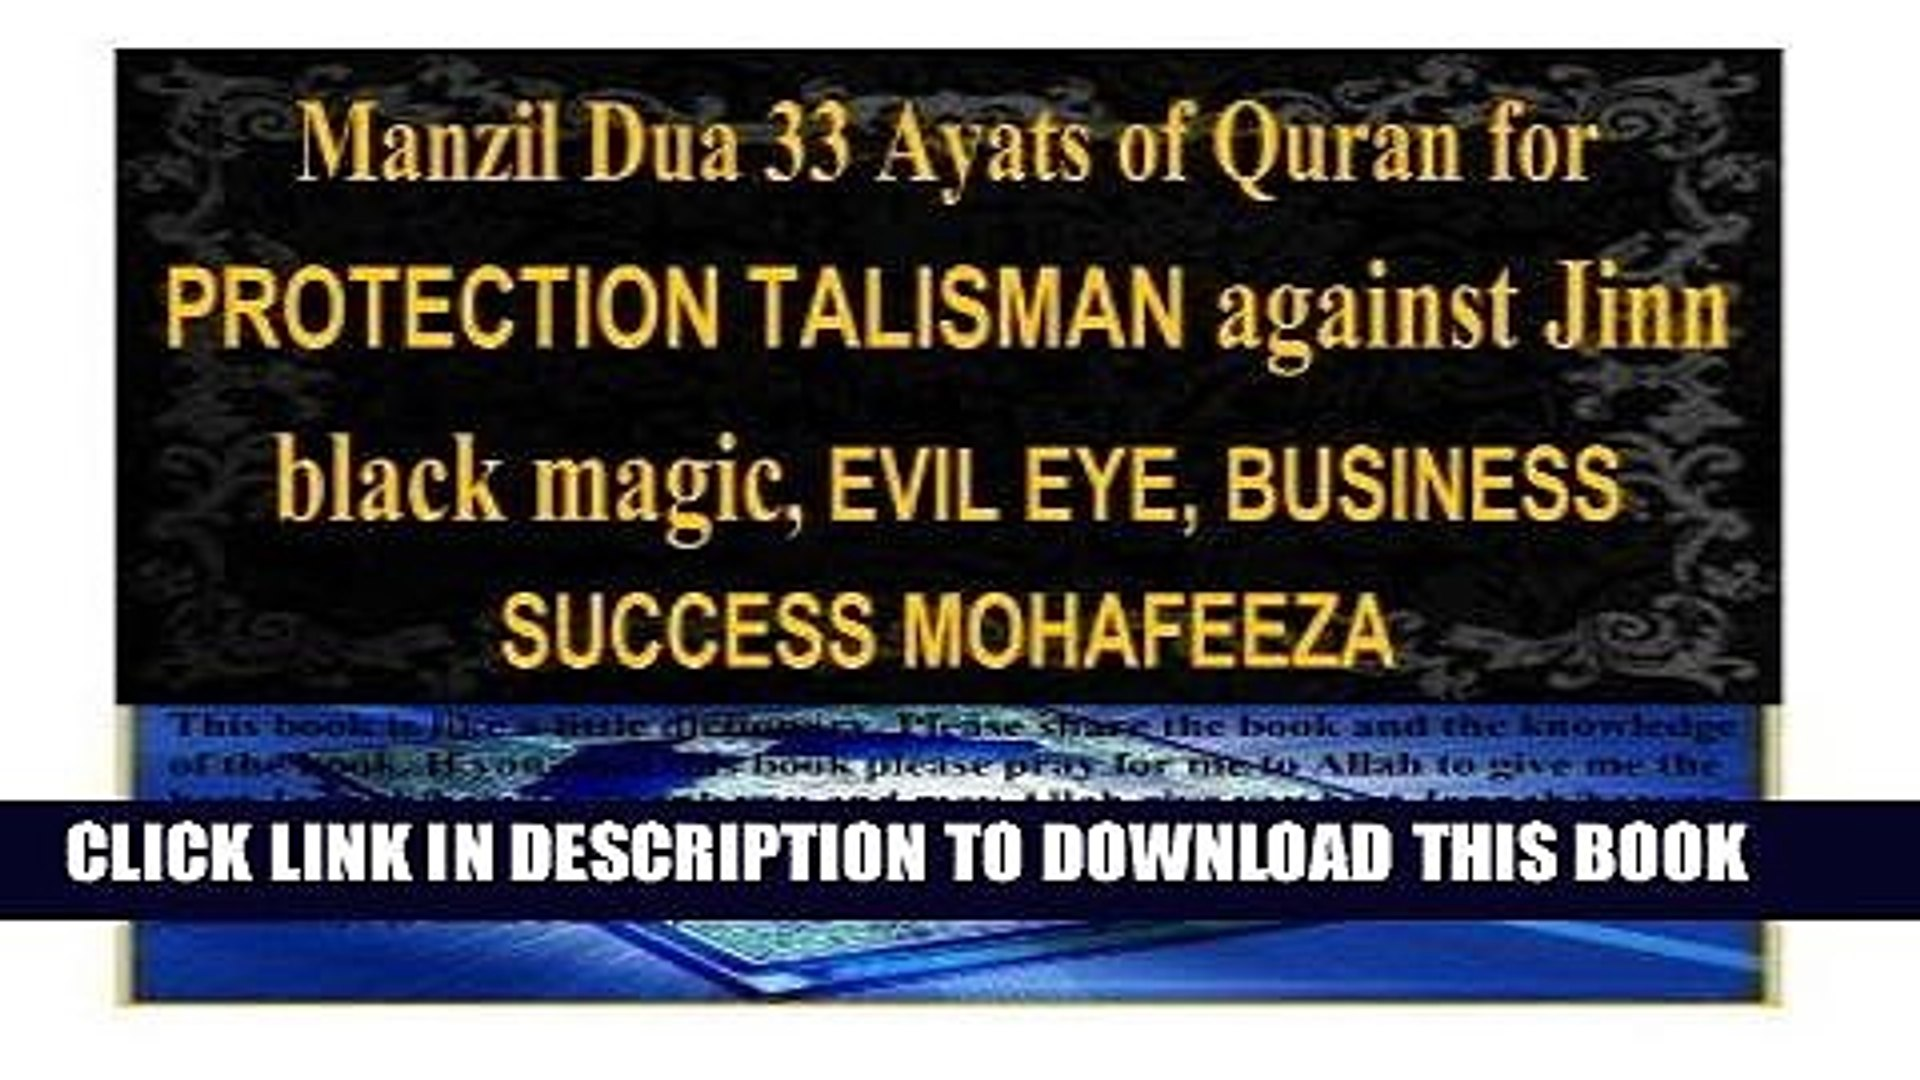 [Free Read] Manzil Dua 33 Ayats of Quran for PROTECTION TALISMAN against  Jinn black magic, EVIL